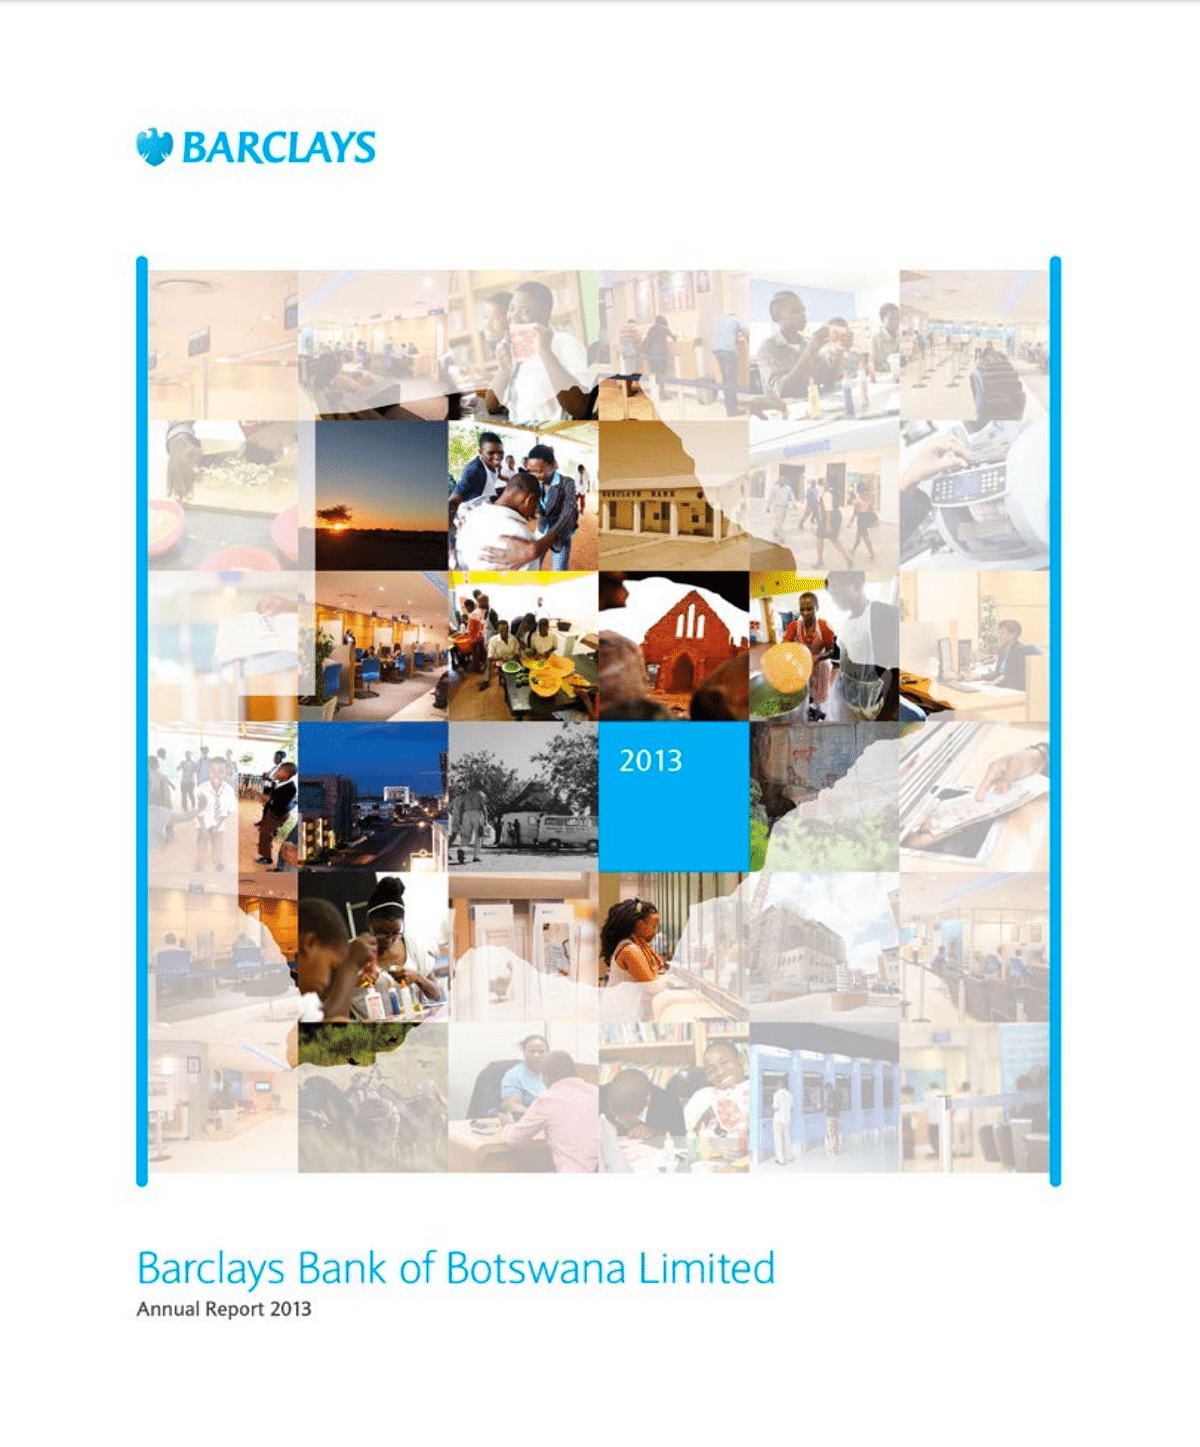 Barclays Bank of Botswana Annual Report 2012 cover